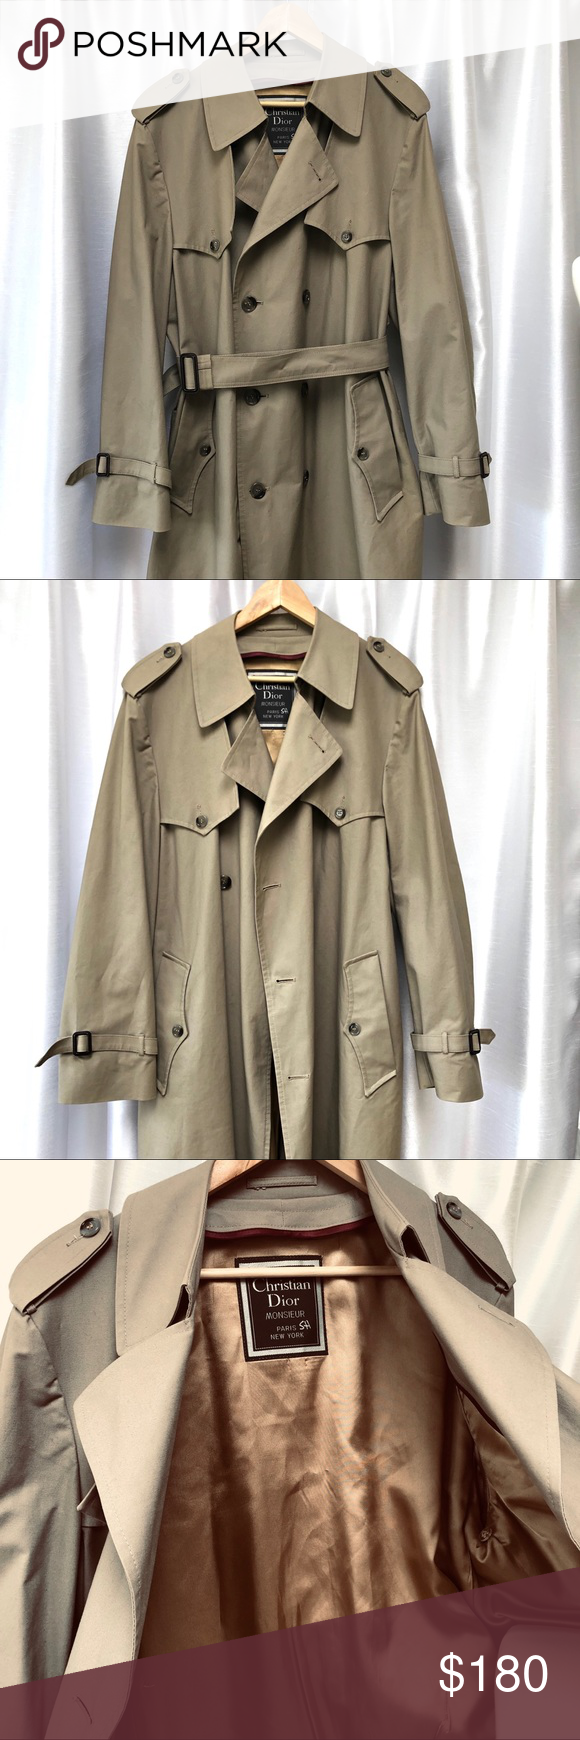 baca4cad Christian Dior 42R Mens Beige Long trench coat Approx Measurements ...